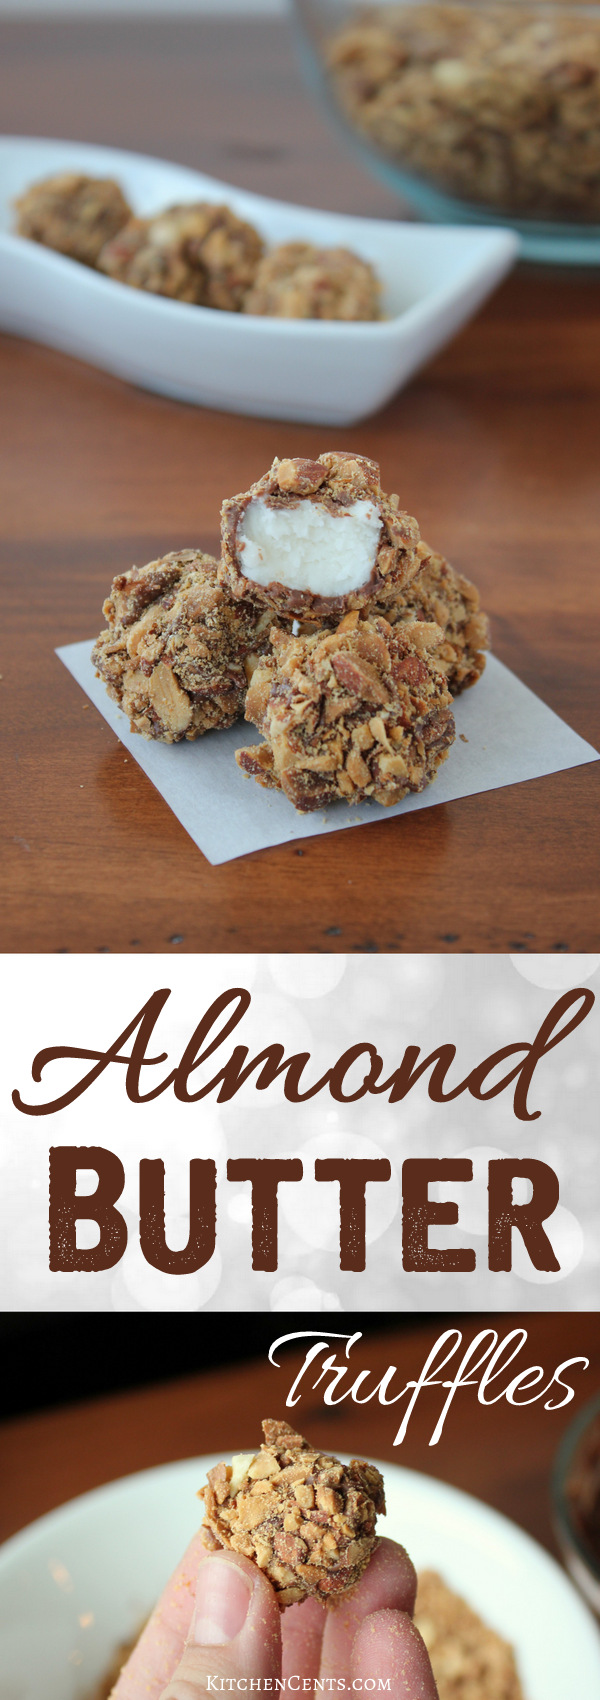 Almond Butter Truffles | KitchenCents.com